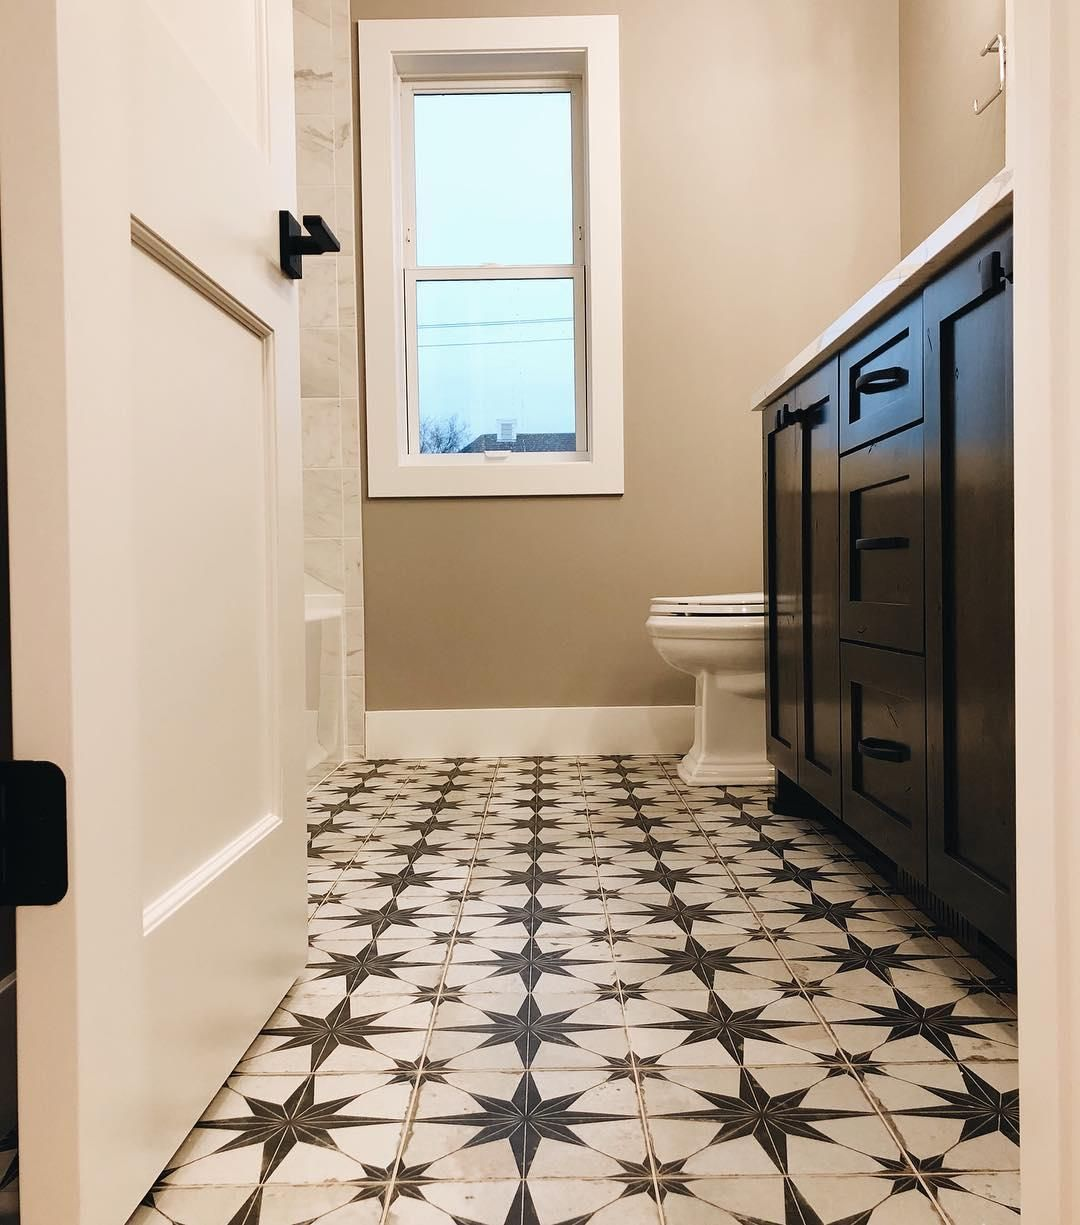 Check Out Htis Modernfarmhouse Bathroom Designed By Thedivinelivingpsace Unique Tiles Can Do A Lot To Add P Wall And Floor Tiles The Tile Shop Tile Floor